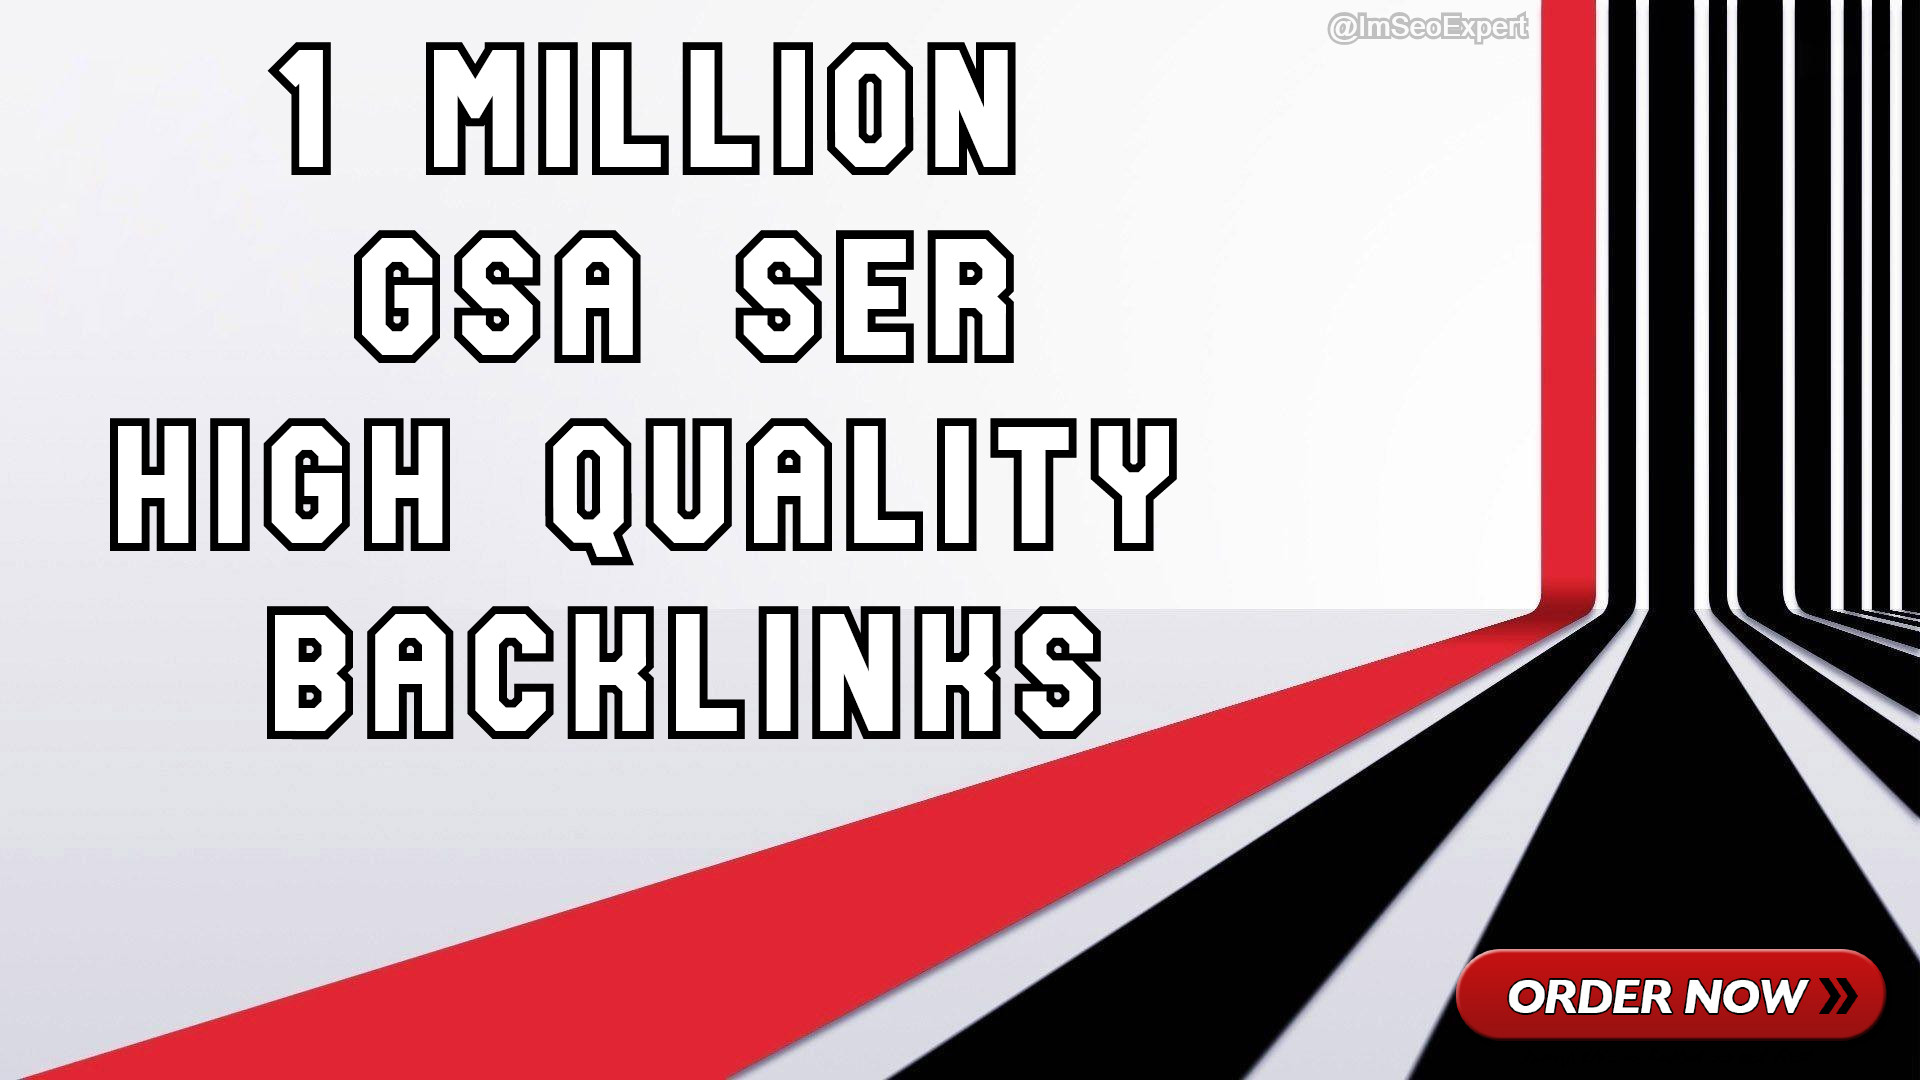 1 Million GSA SER High Quality BackLinks Authority Backlinks